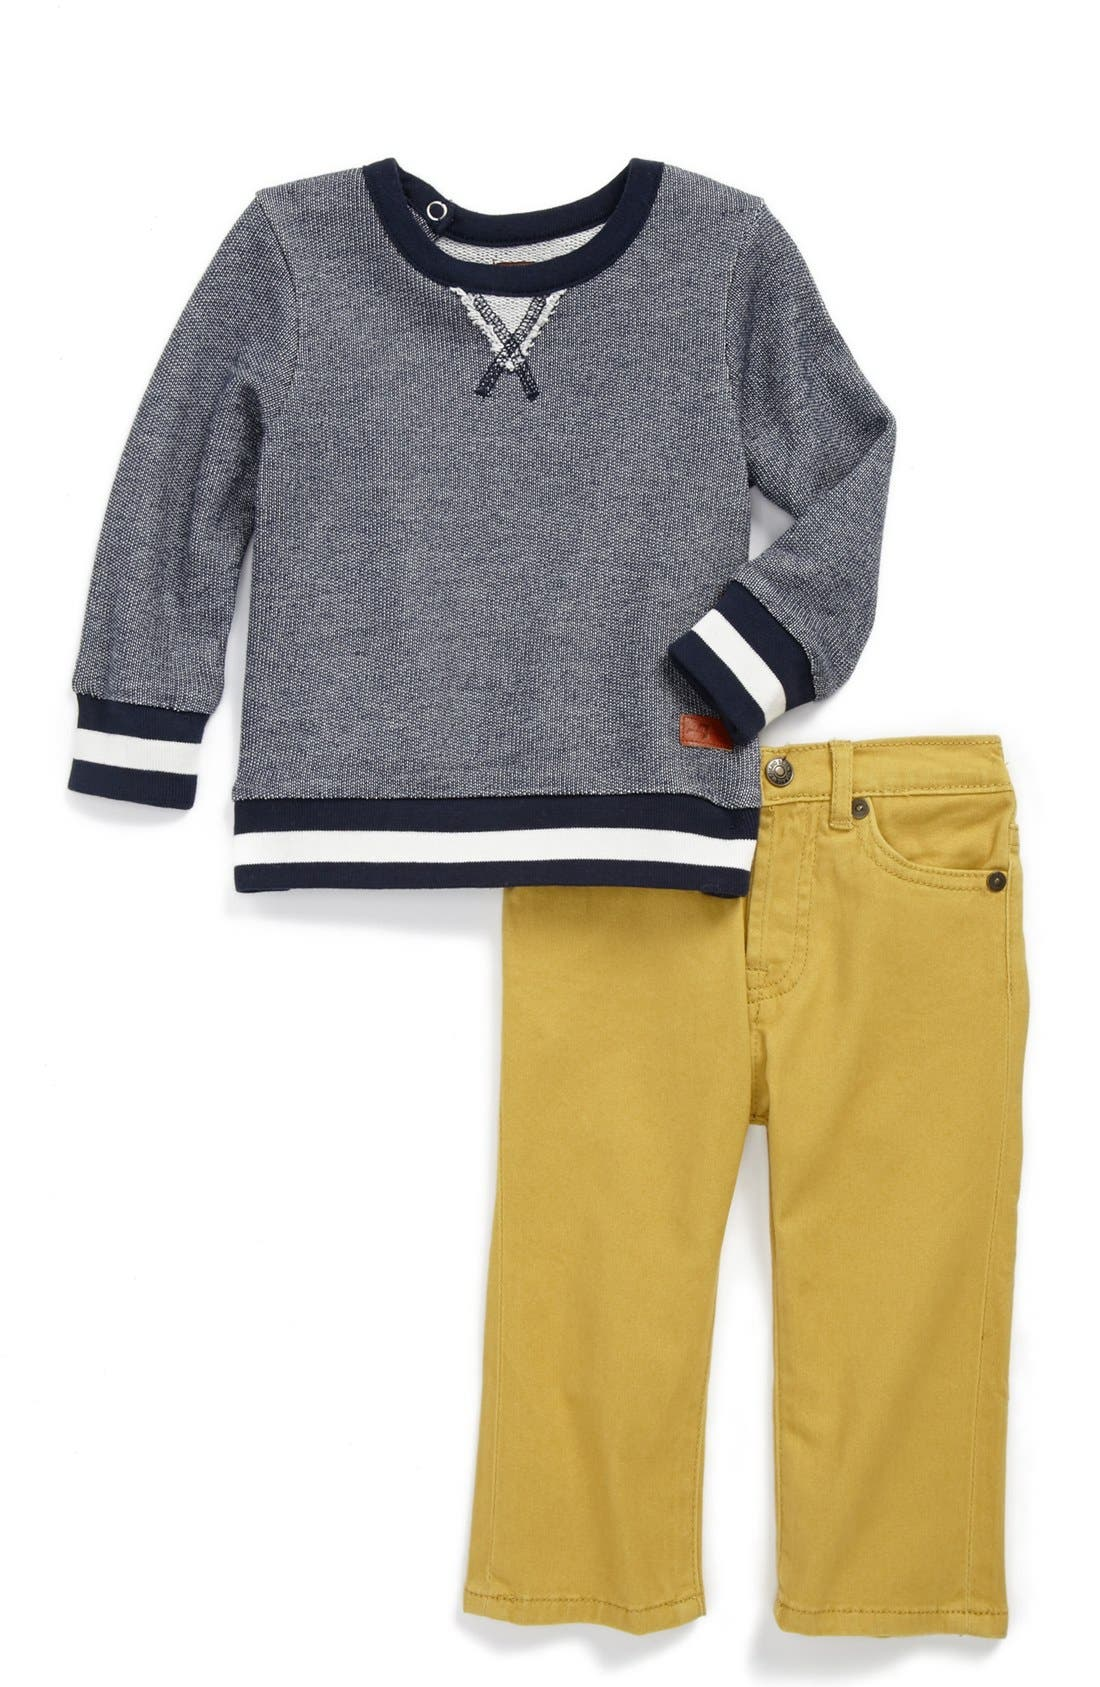 Main Image - 7 For All Mankind® T-Shirt & Pants (Baby Boys)